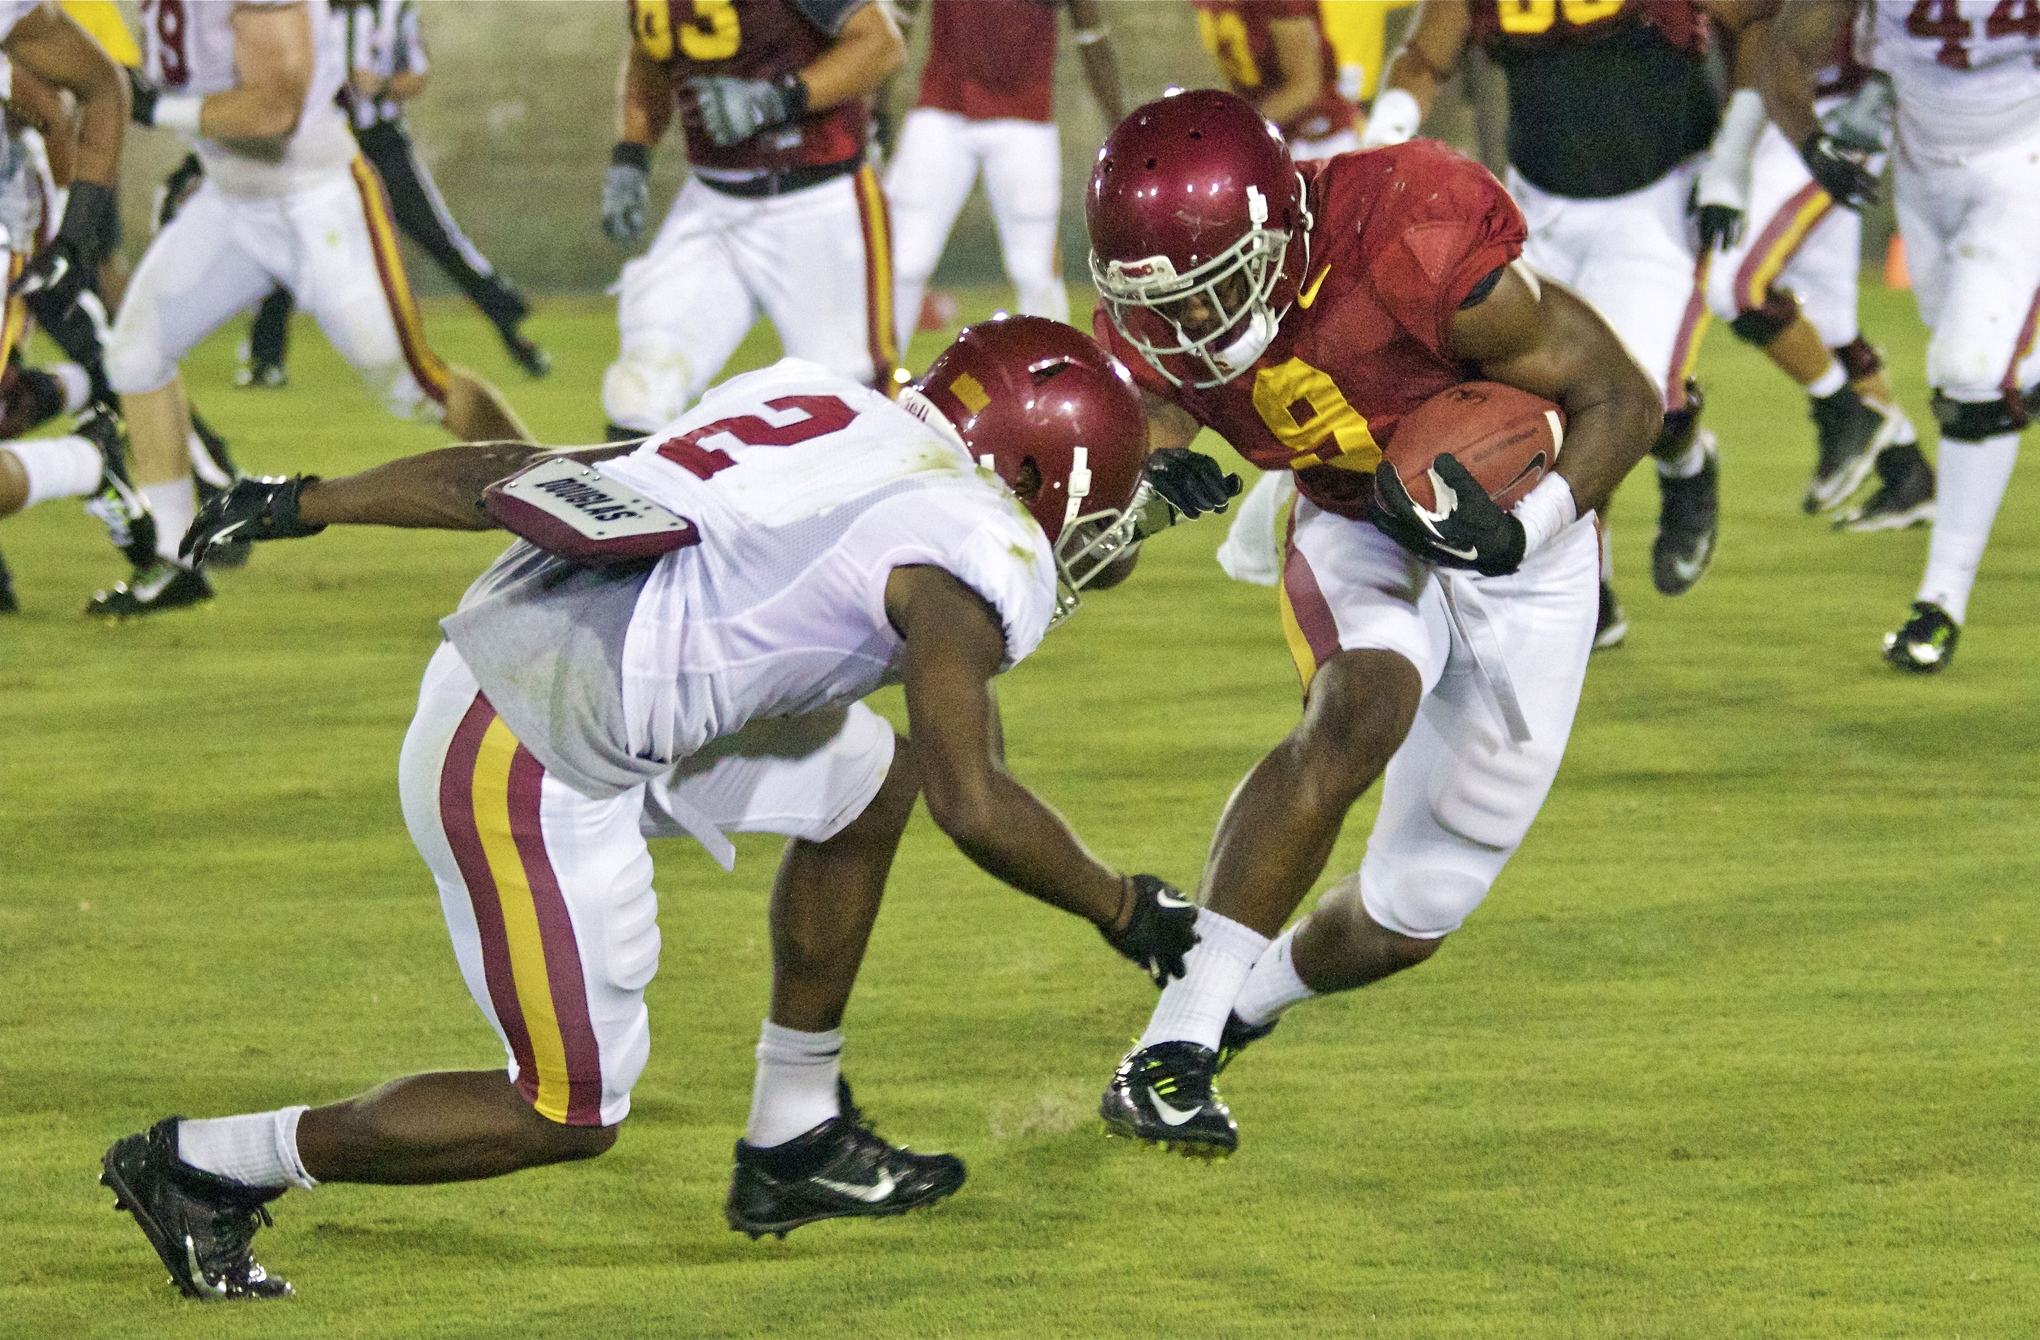 Kevon Seymour Usc Fall Camp Chronicles: ...